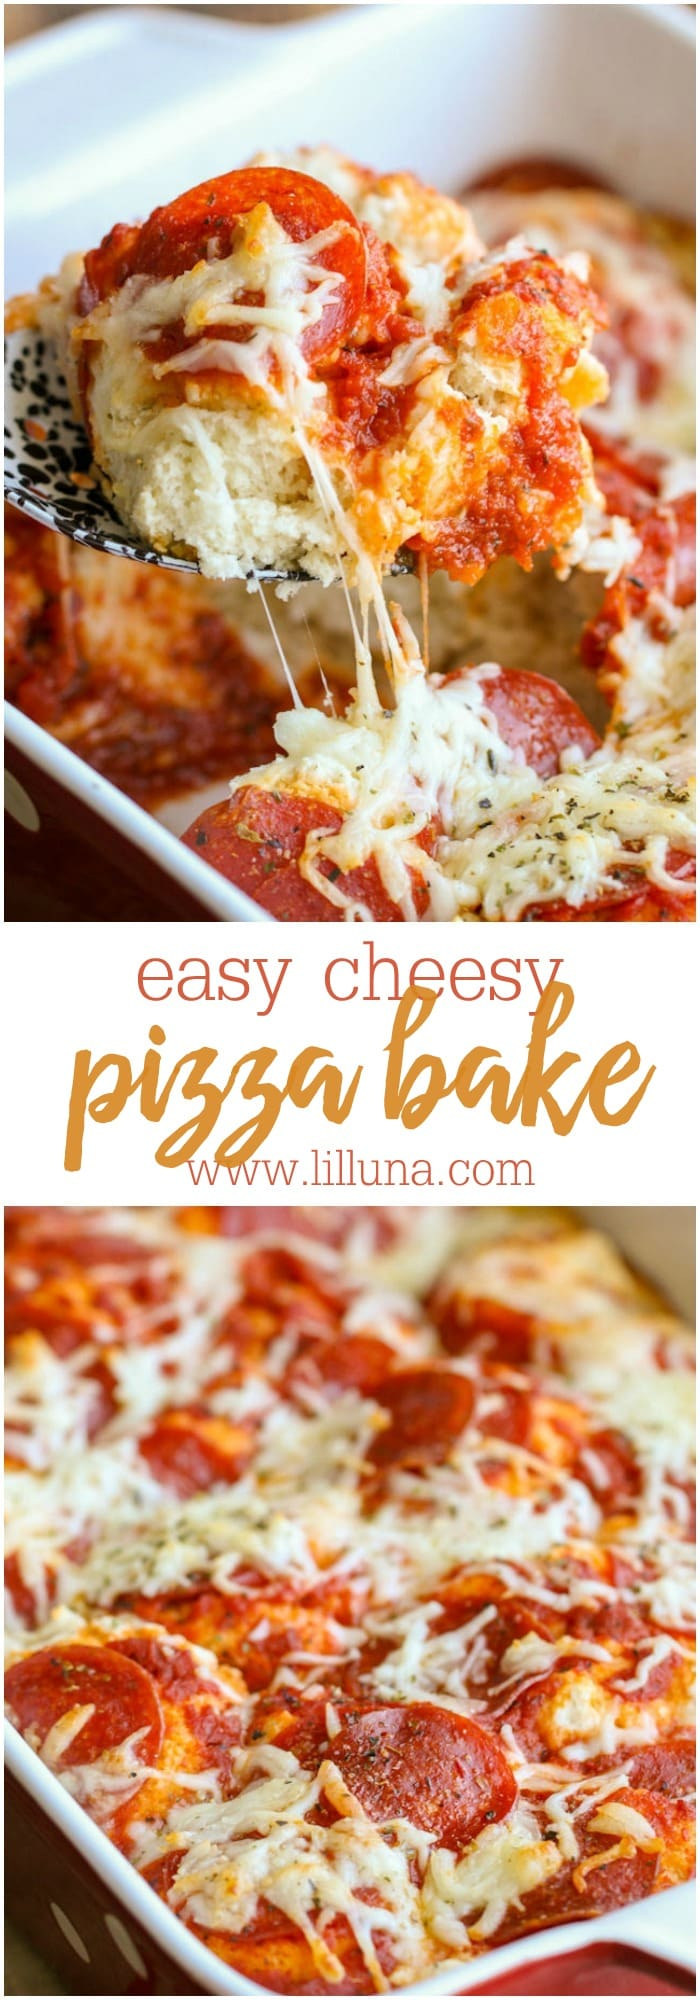 Easy Pizza Bake - a new favorite dinner recipe!! Pizza dough made from bisquick smothered in pizza sauce and cheese topped with toppings of your choice!! YUM!